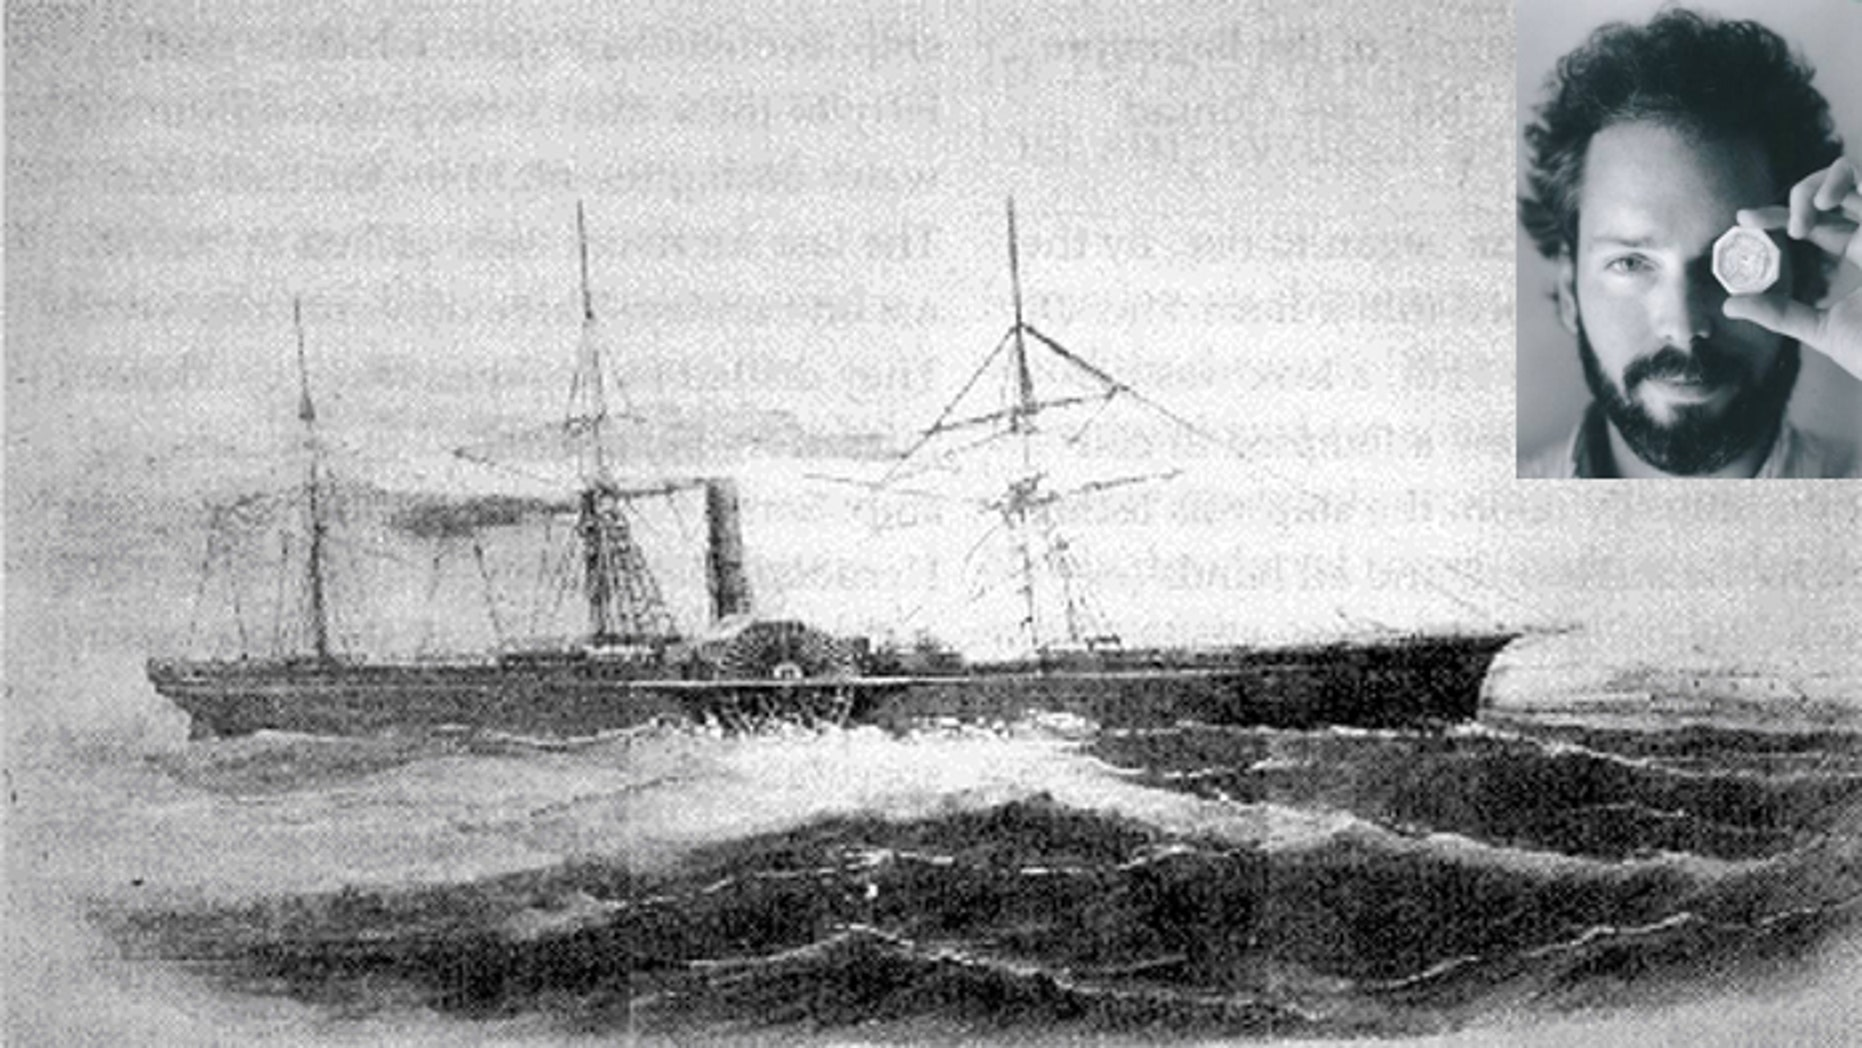 """The 280-foot SS Central America, which has been dubbed the """"Ship of Gold,"""" sank during a hurricane off the North Carolina coast in 1857. Tommy Thompson (inset), who found it and then disappeared, is now in custody. (Columbus Dispatch)"""